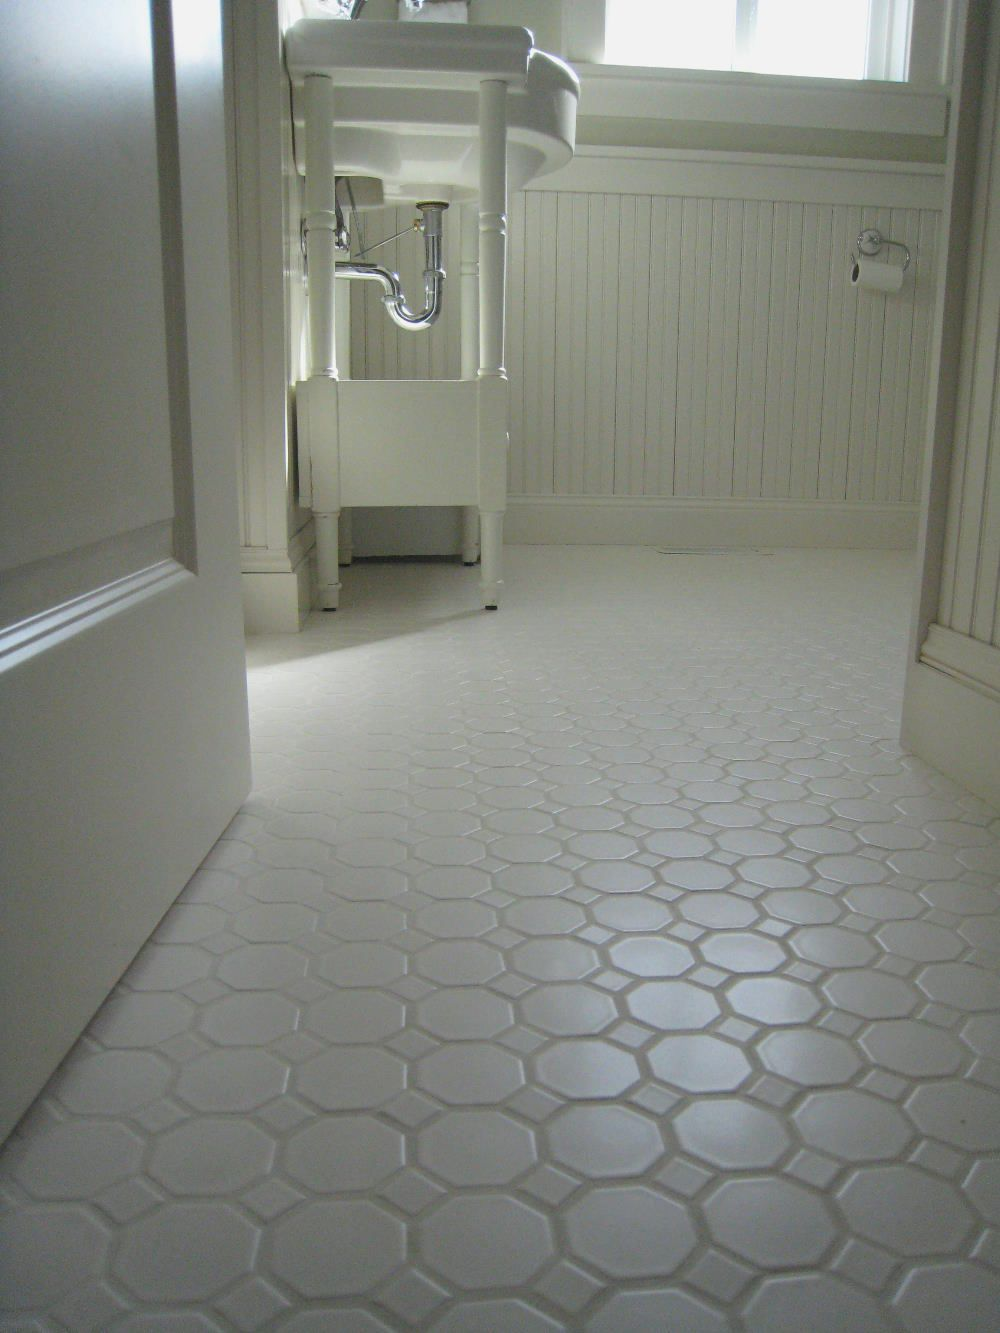 Non slip bathroom floor tiles more picture non slip for Bathroom flooring ideas